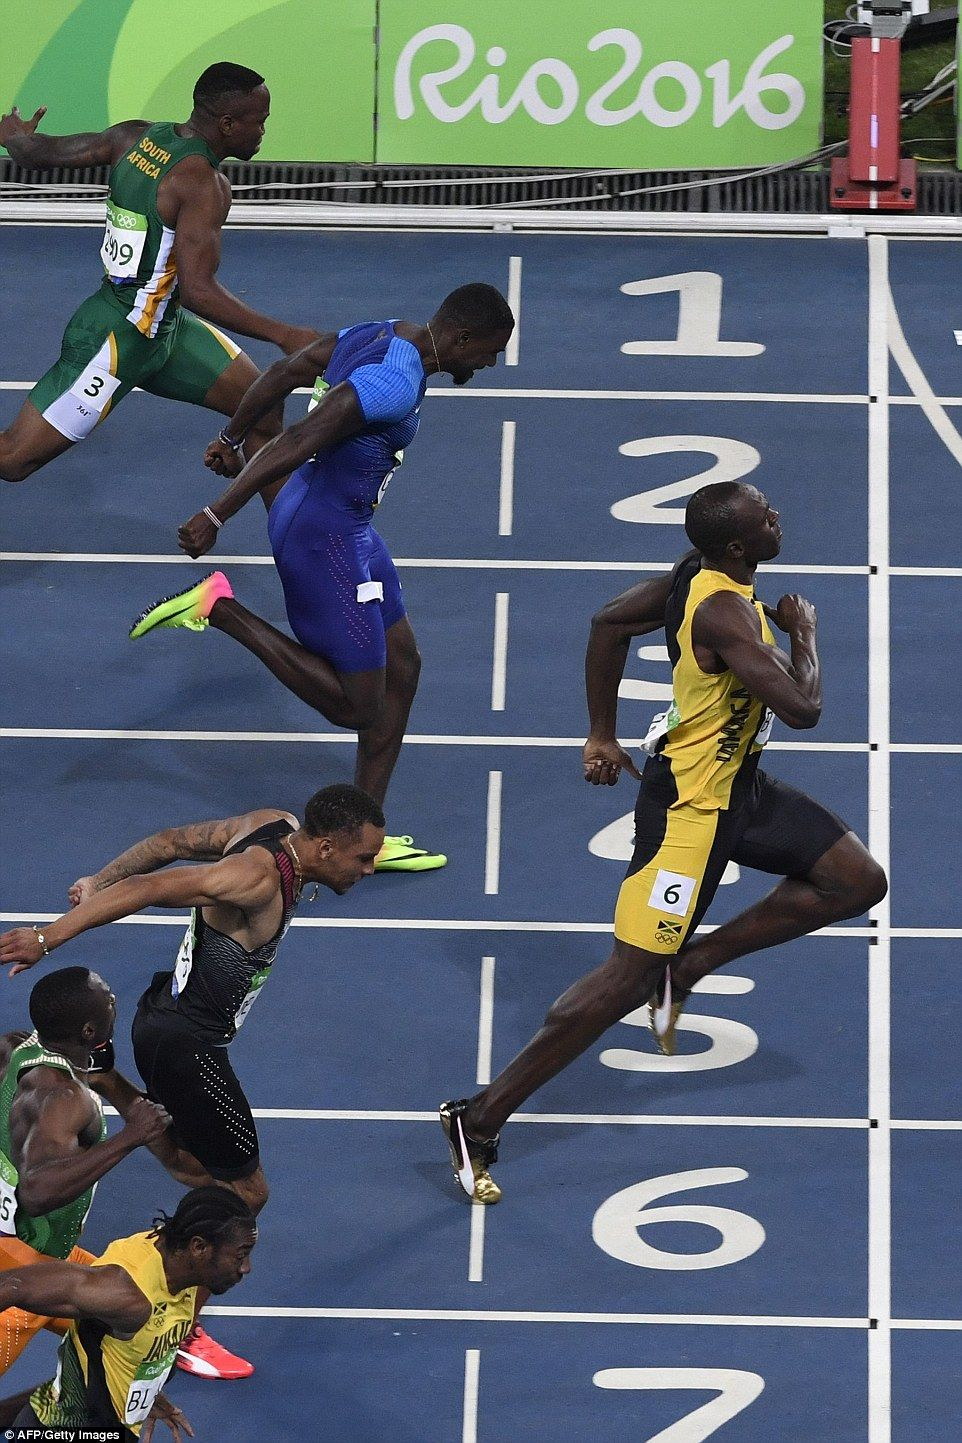 Usain Bolt wins third Olympic gold medal in the 100m (With